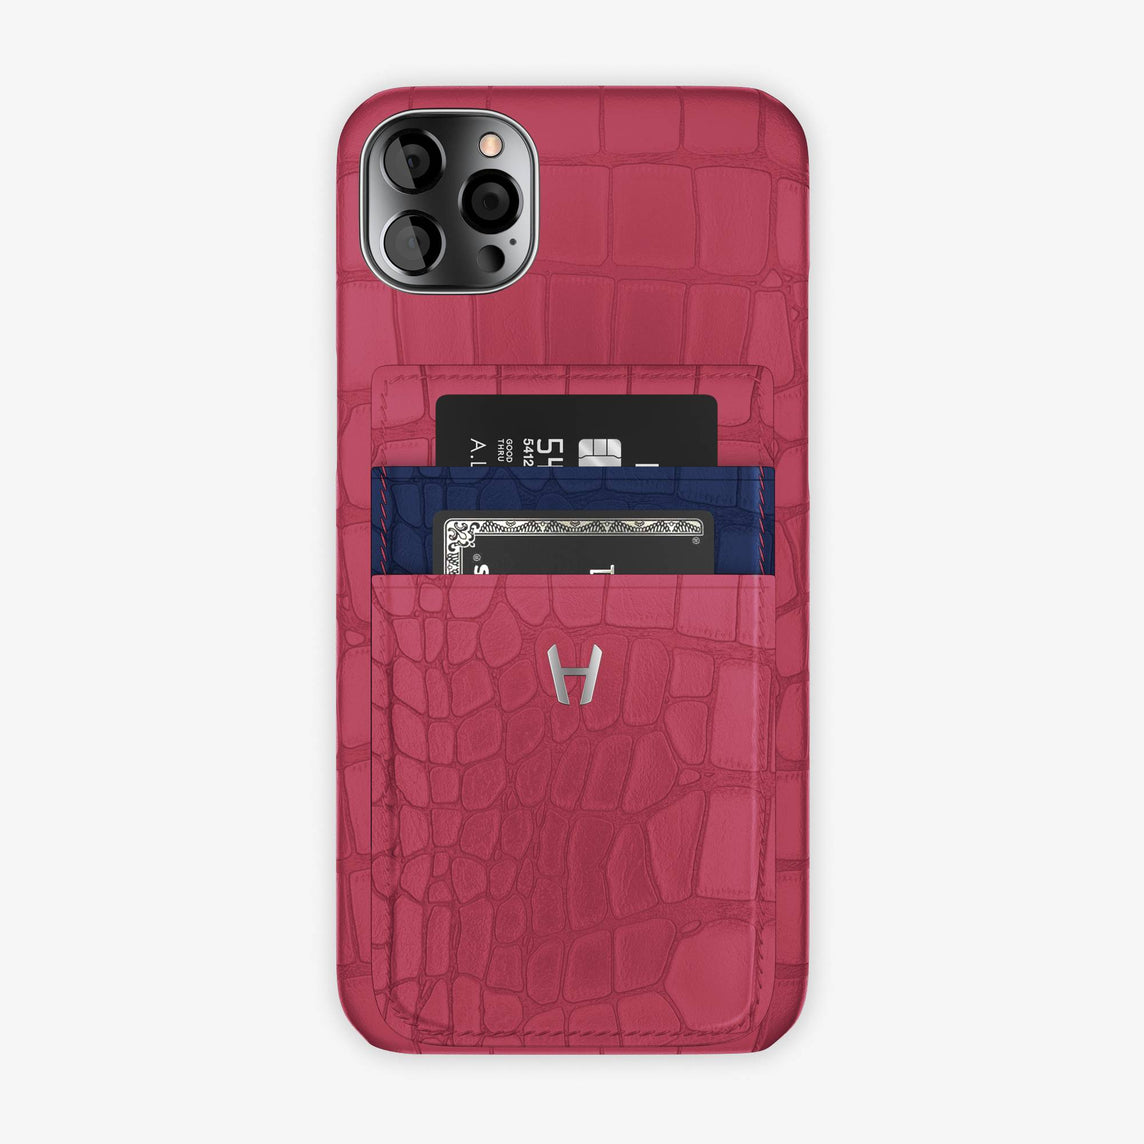 Alligator Pocket Case iPhone 12 Pro Max | Pink Girly/Navy Blue - Stainless Steel